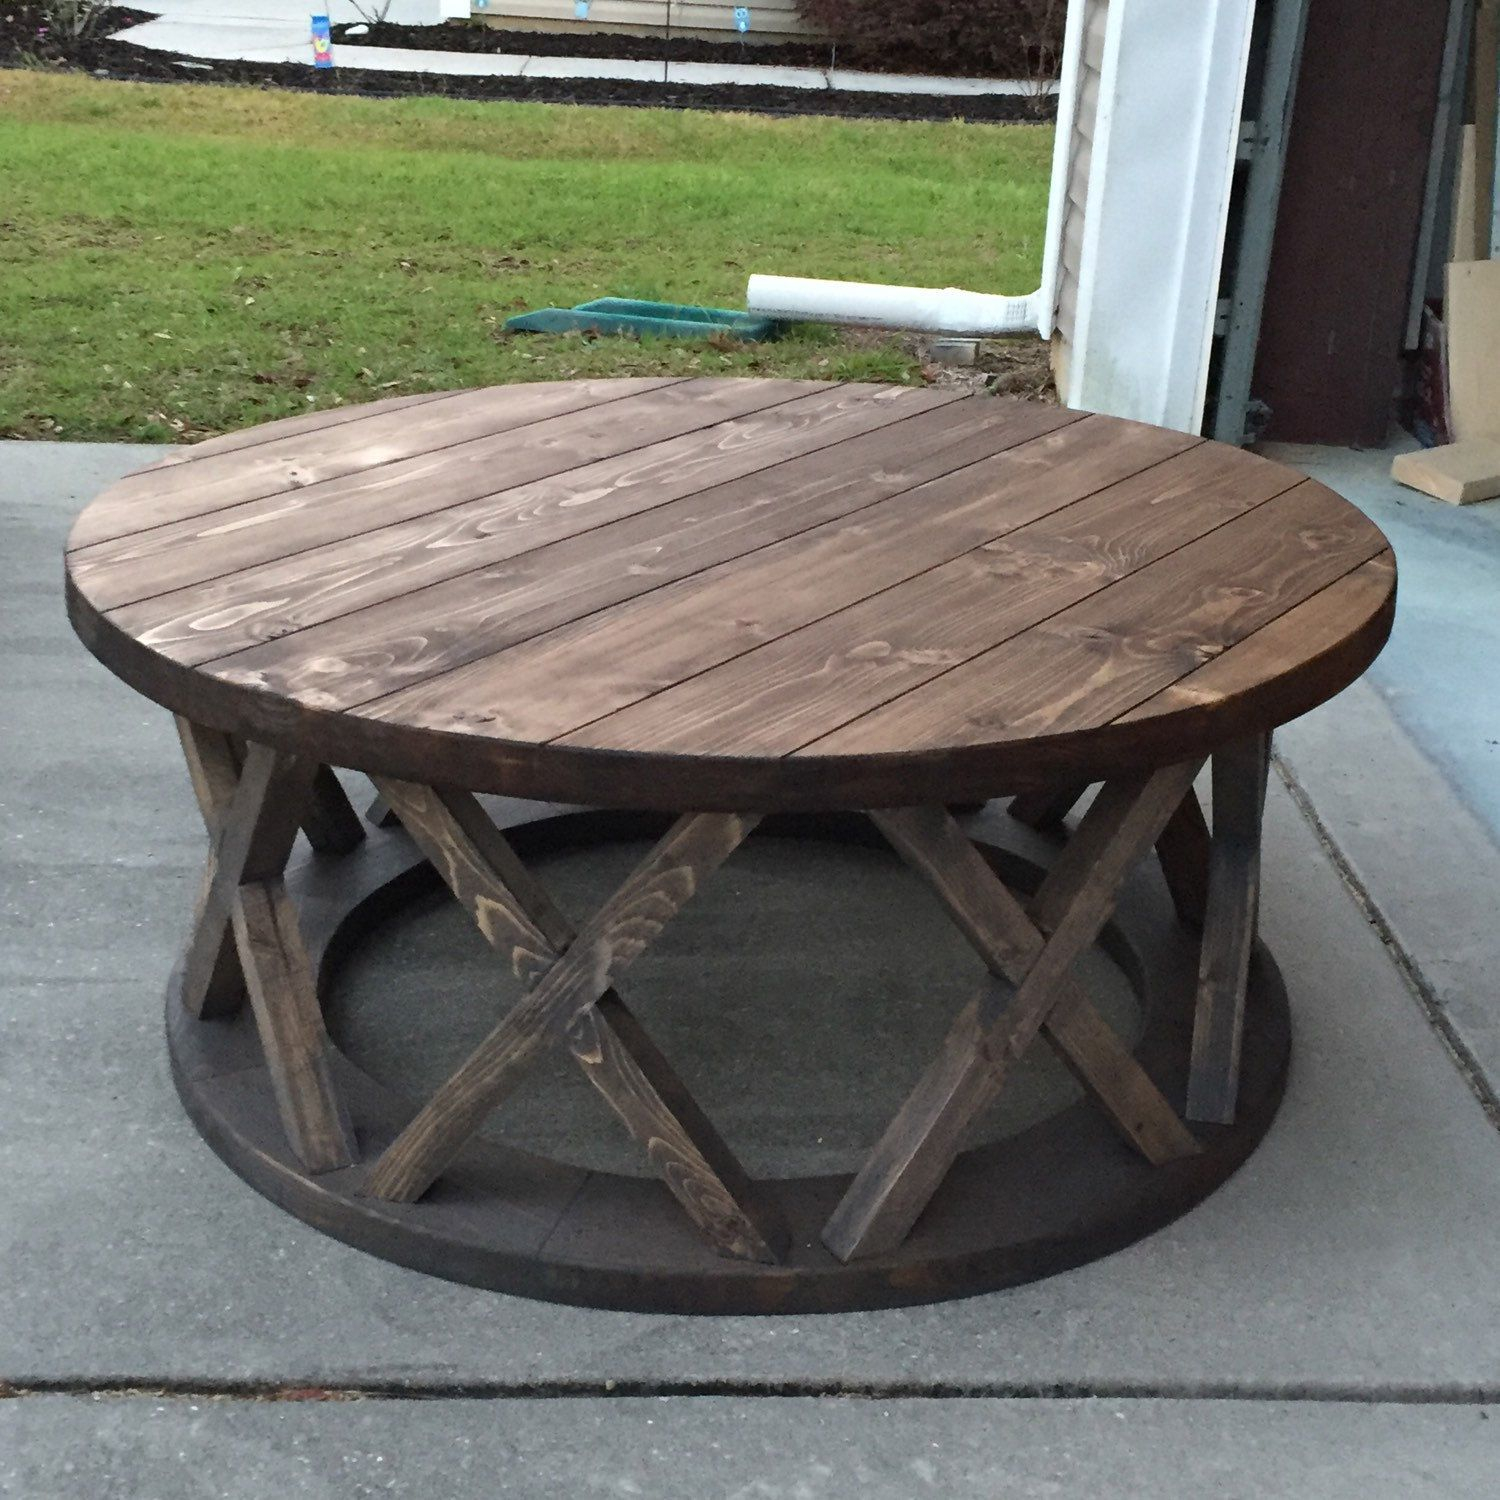 unfinished wood coffee tables accent the custom built round brace farmhouse table end with power strip farm porch chairs black gloss side ice box cooler outdoor garden fabric